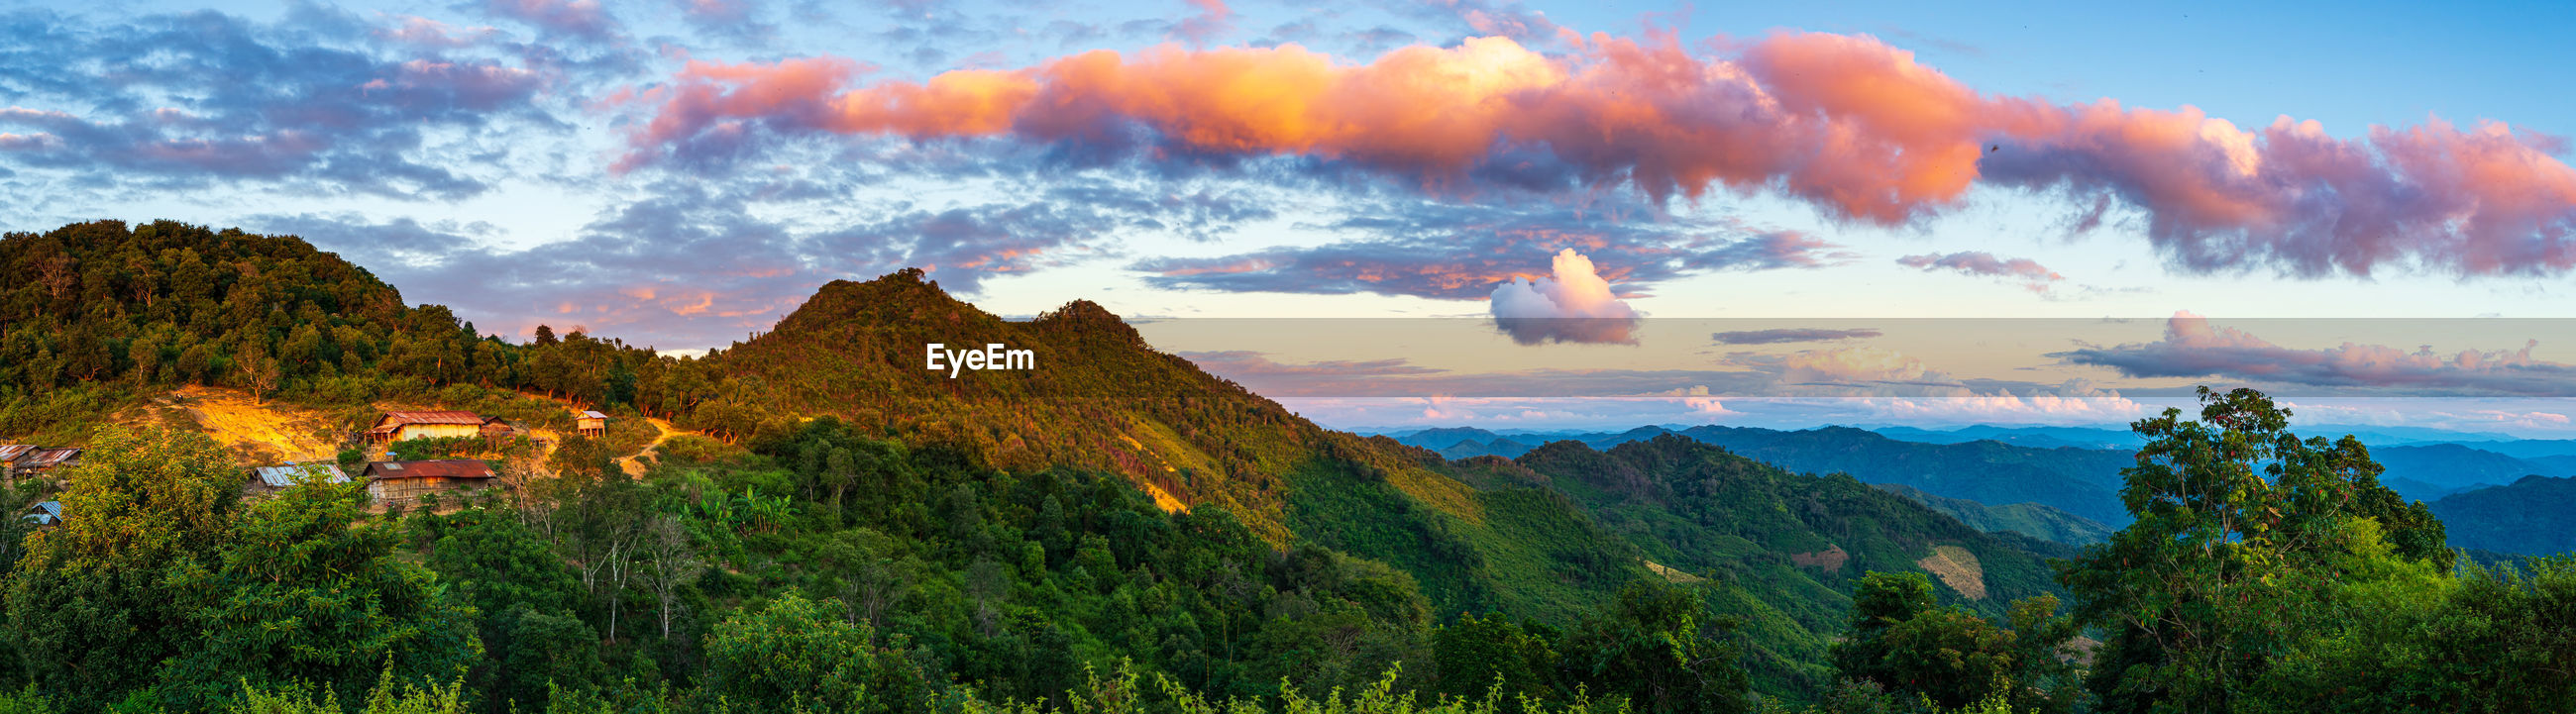 PANORAMIC VIEW OF TREES ON MOUNTAIN AGAINST SKY